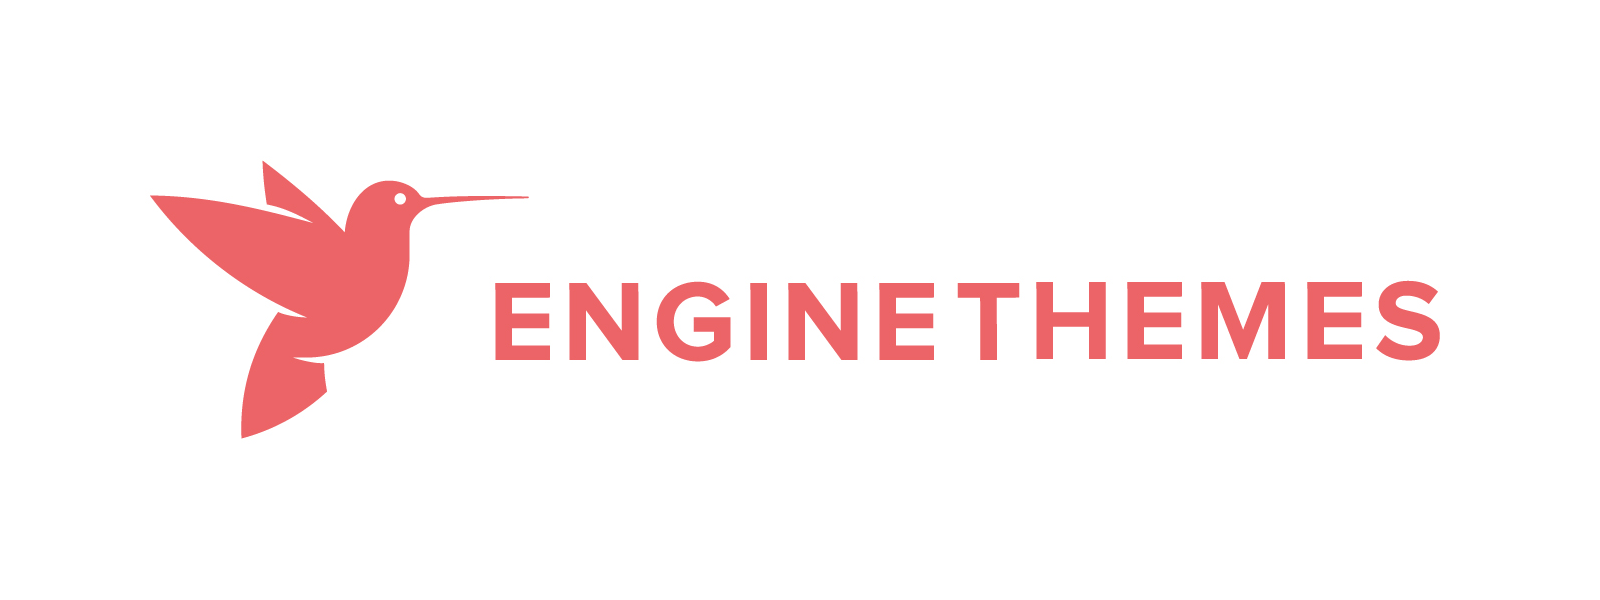 EngineThemes logo